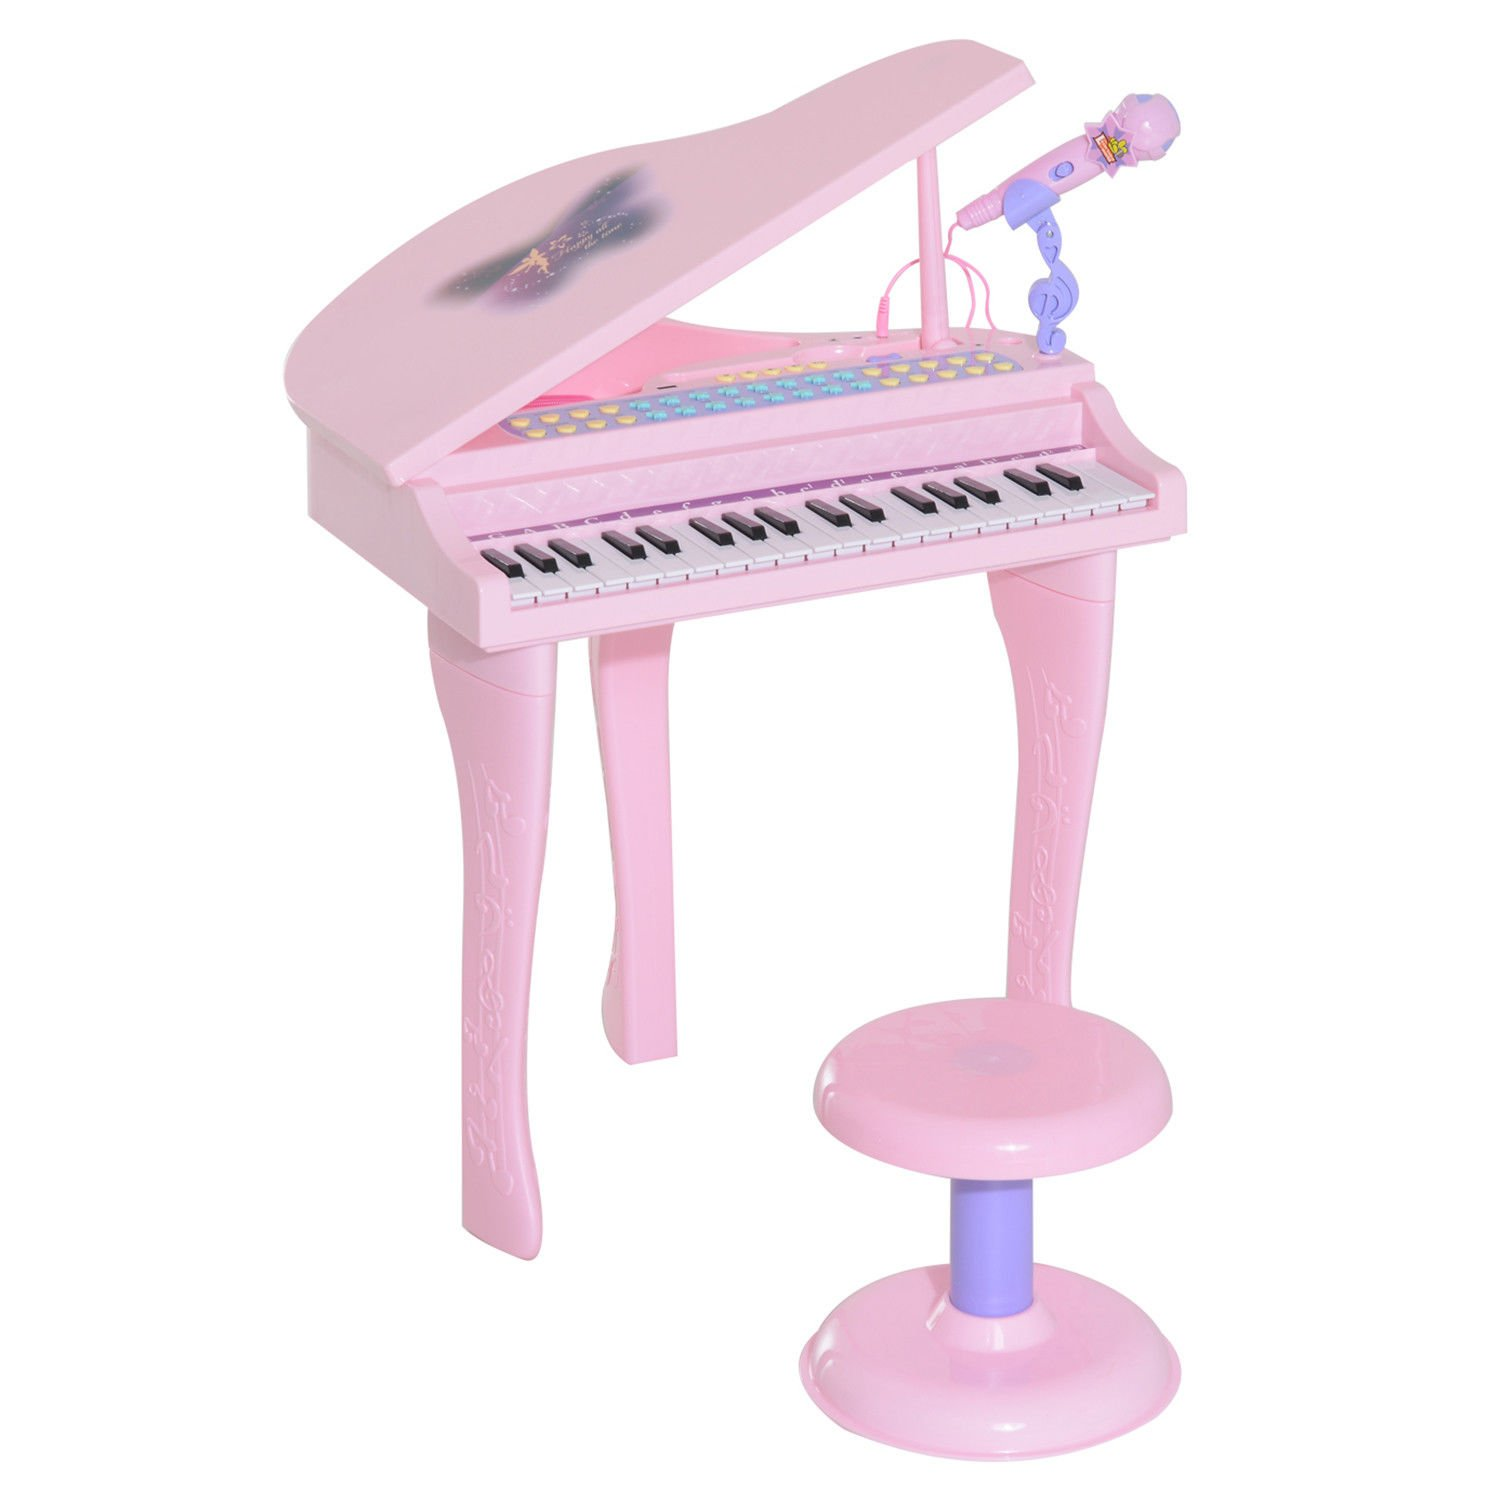 Qaba 37 Key Kids Toy Baby Grand Digital Piano with Microphone and Stool - Pink by Qaba